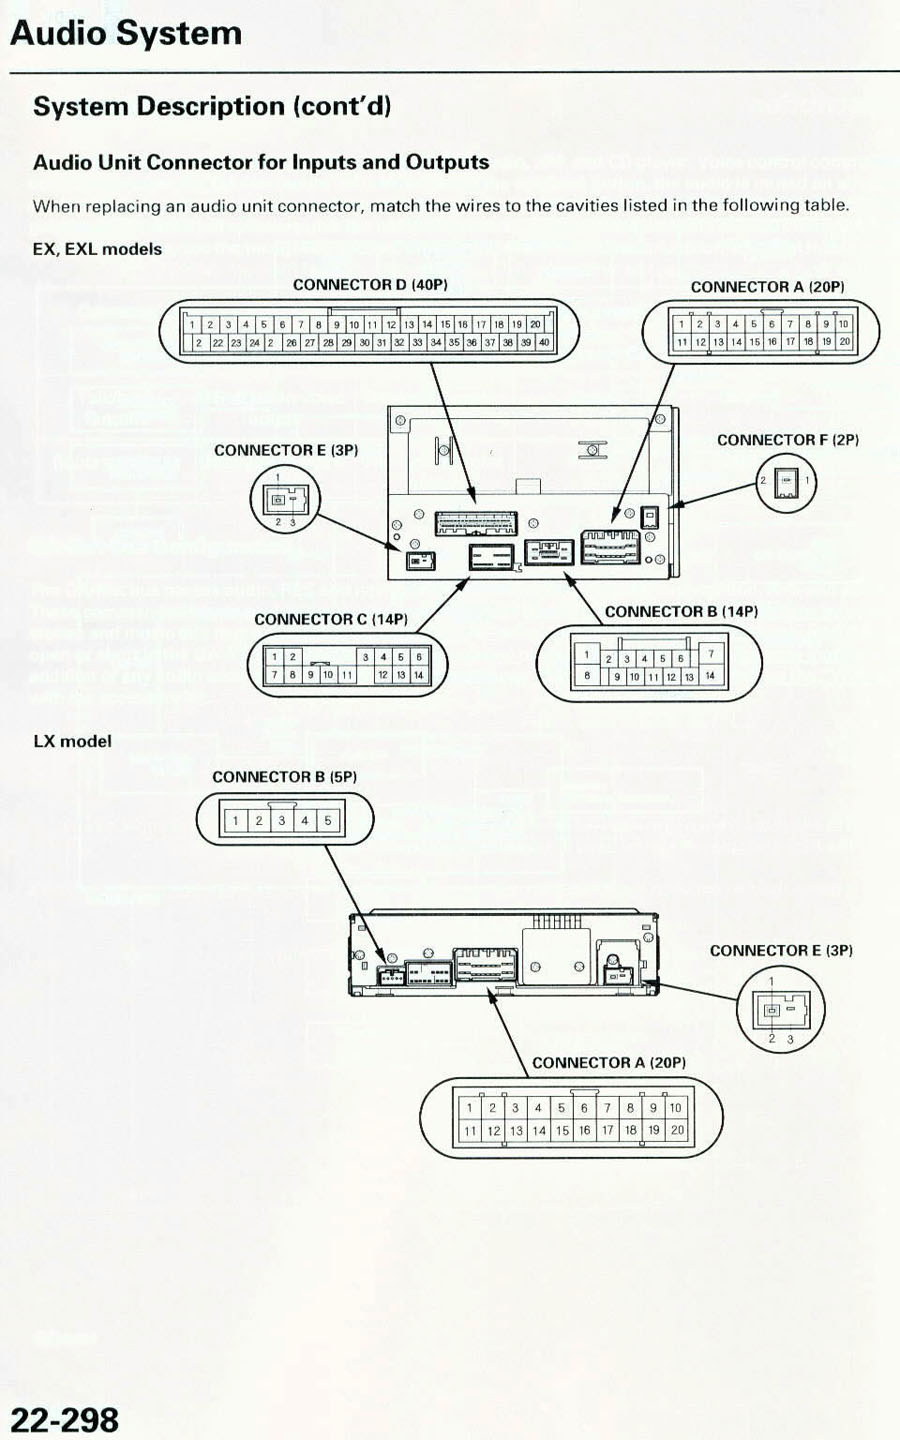 32969d1200063279 re factory subwoofer aftermarket hu audio_connector 2006 re factory subwoofer and aftermarket hu honda pilot honda 2005 honda pilot wiring diagram at edmiracle.co